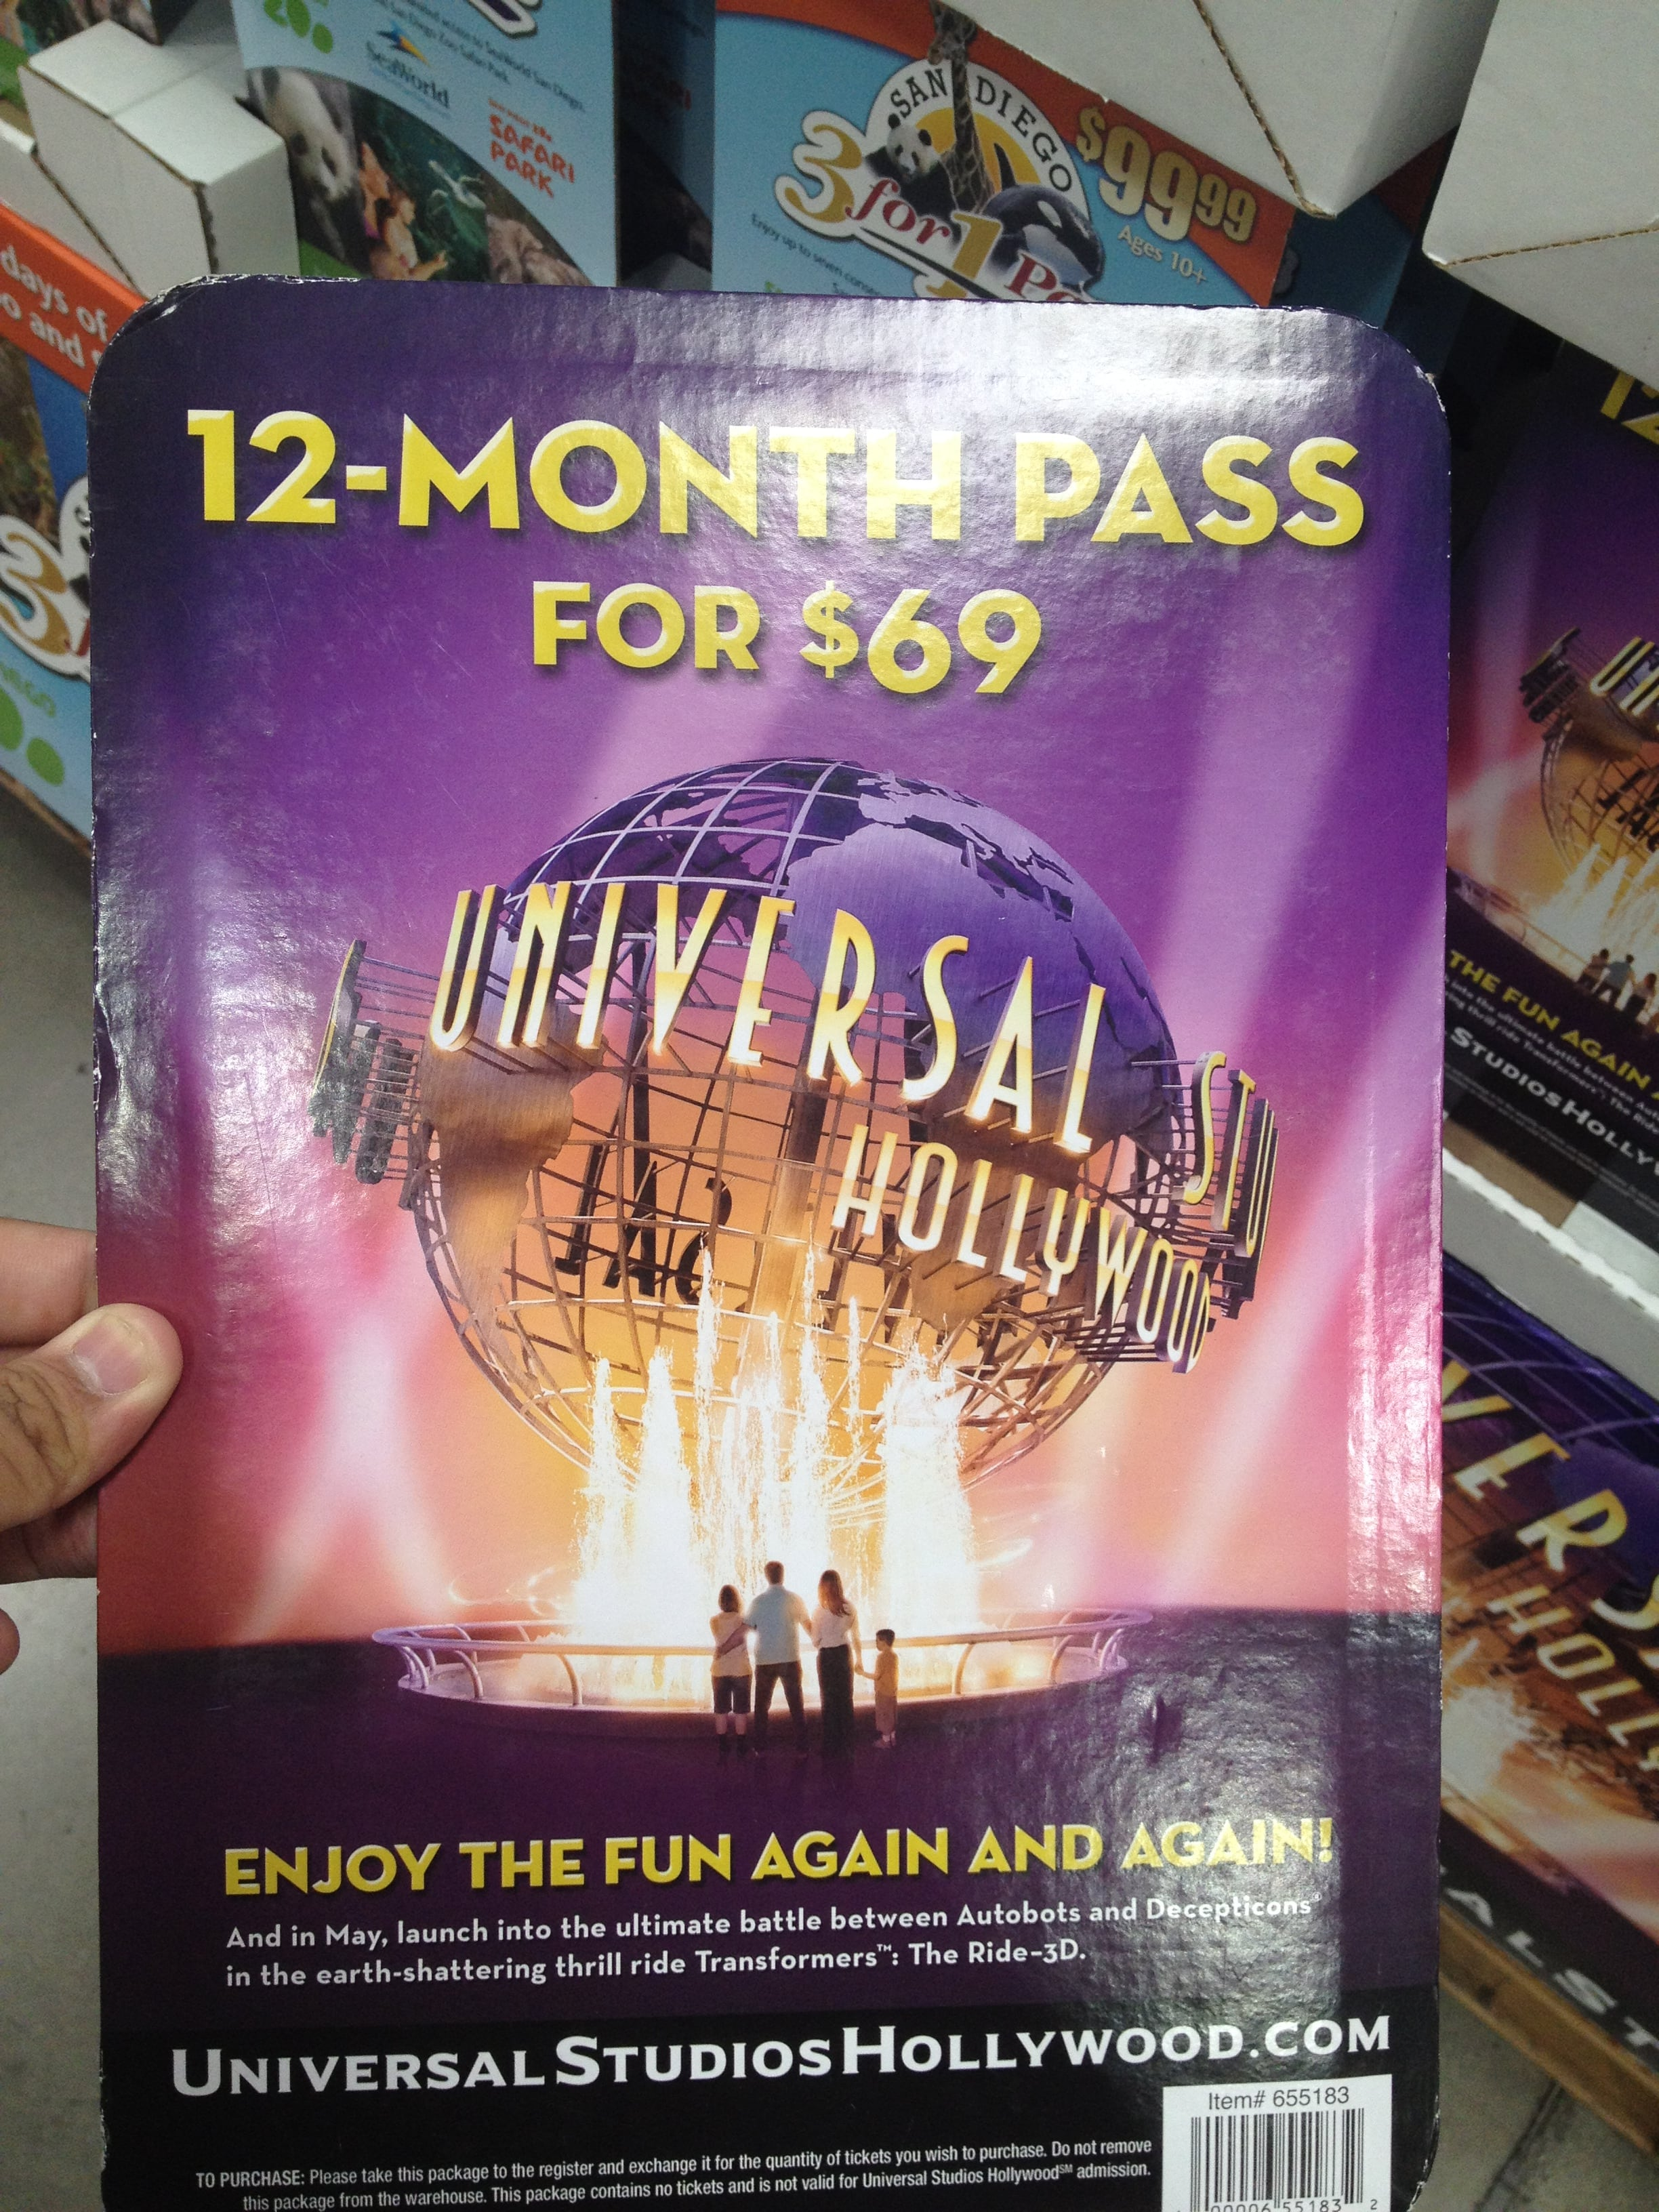 Universal Studios Coupons. All Offers (10) Codes (1) Product Deals (1) In-Store & Ads ; Annual Passes as low as $ Verified Used 11 Times in the Last Week. Get Offer. SALE Search for Hotels, Tickets & Packages Expired and Not Verified Universal Studios Promo Codes & Offers.